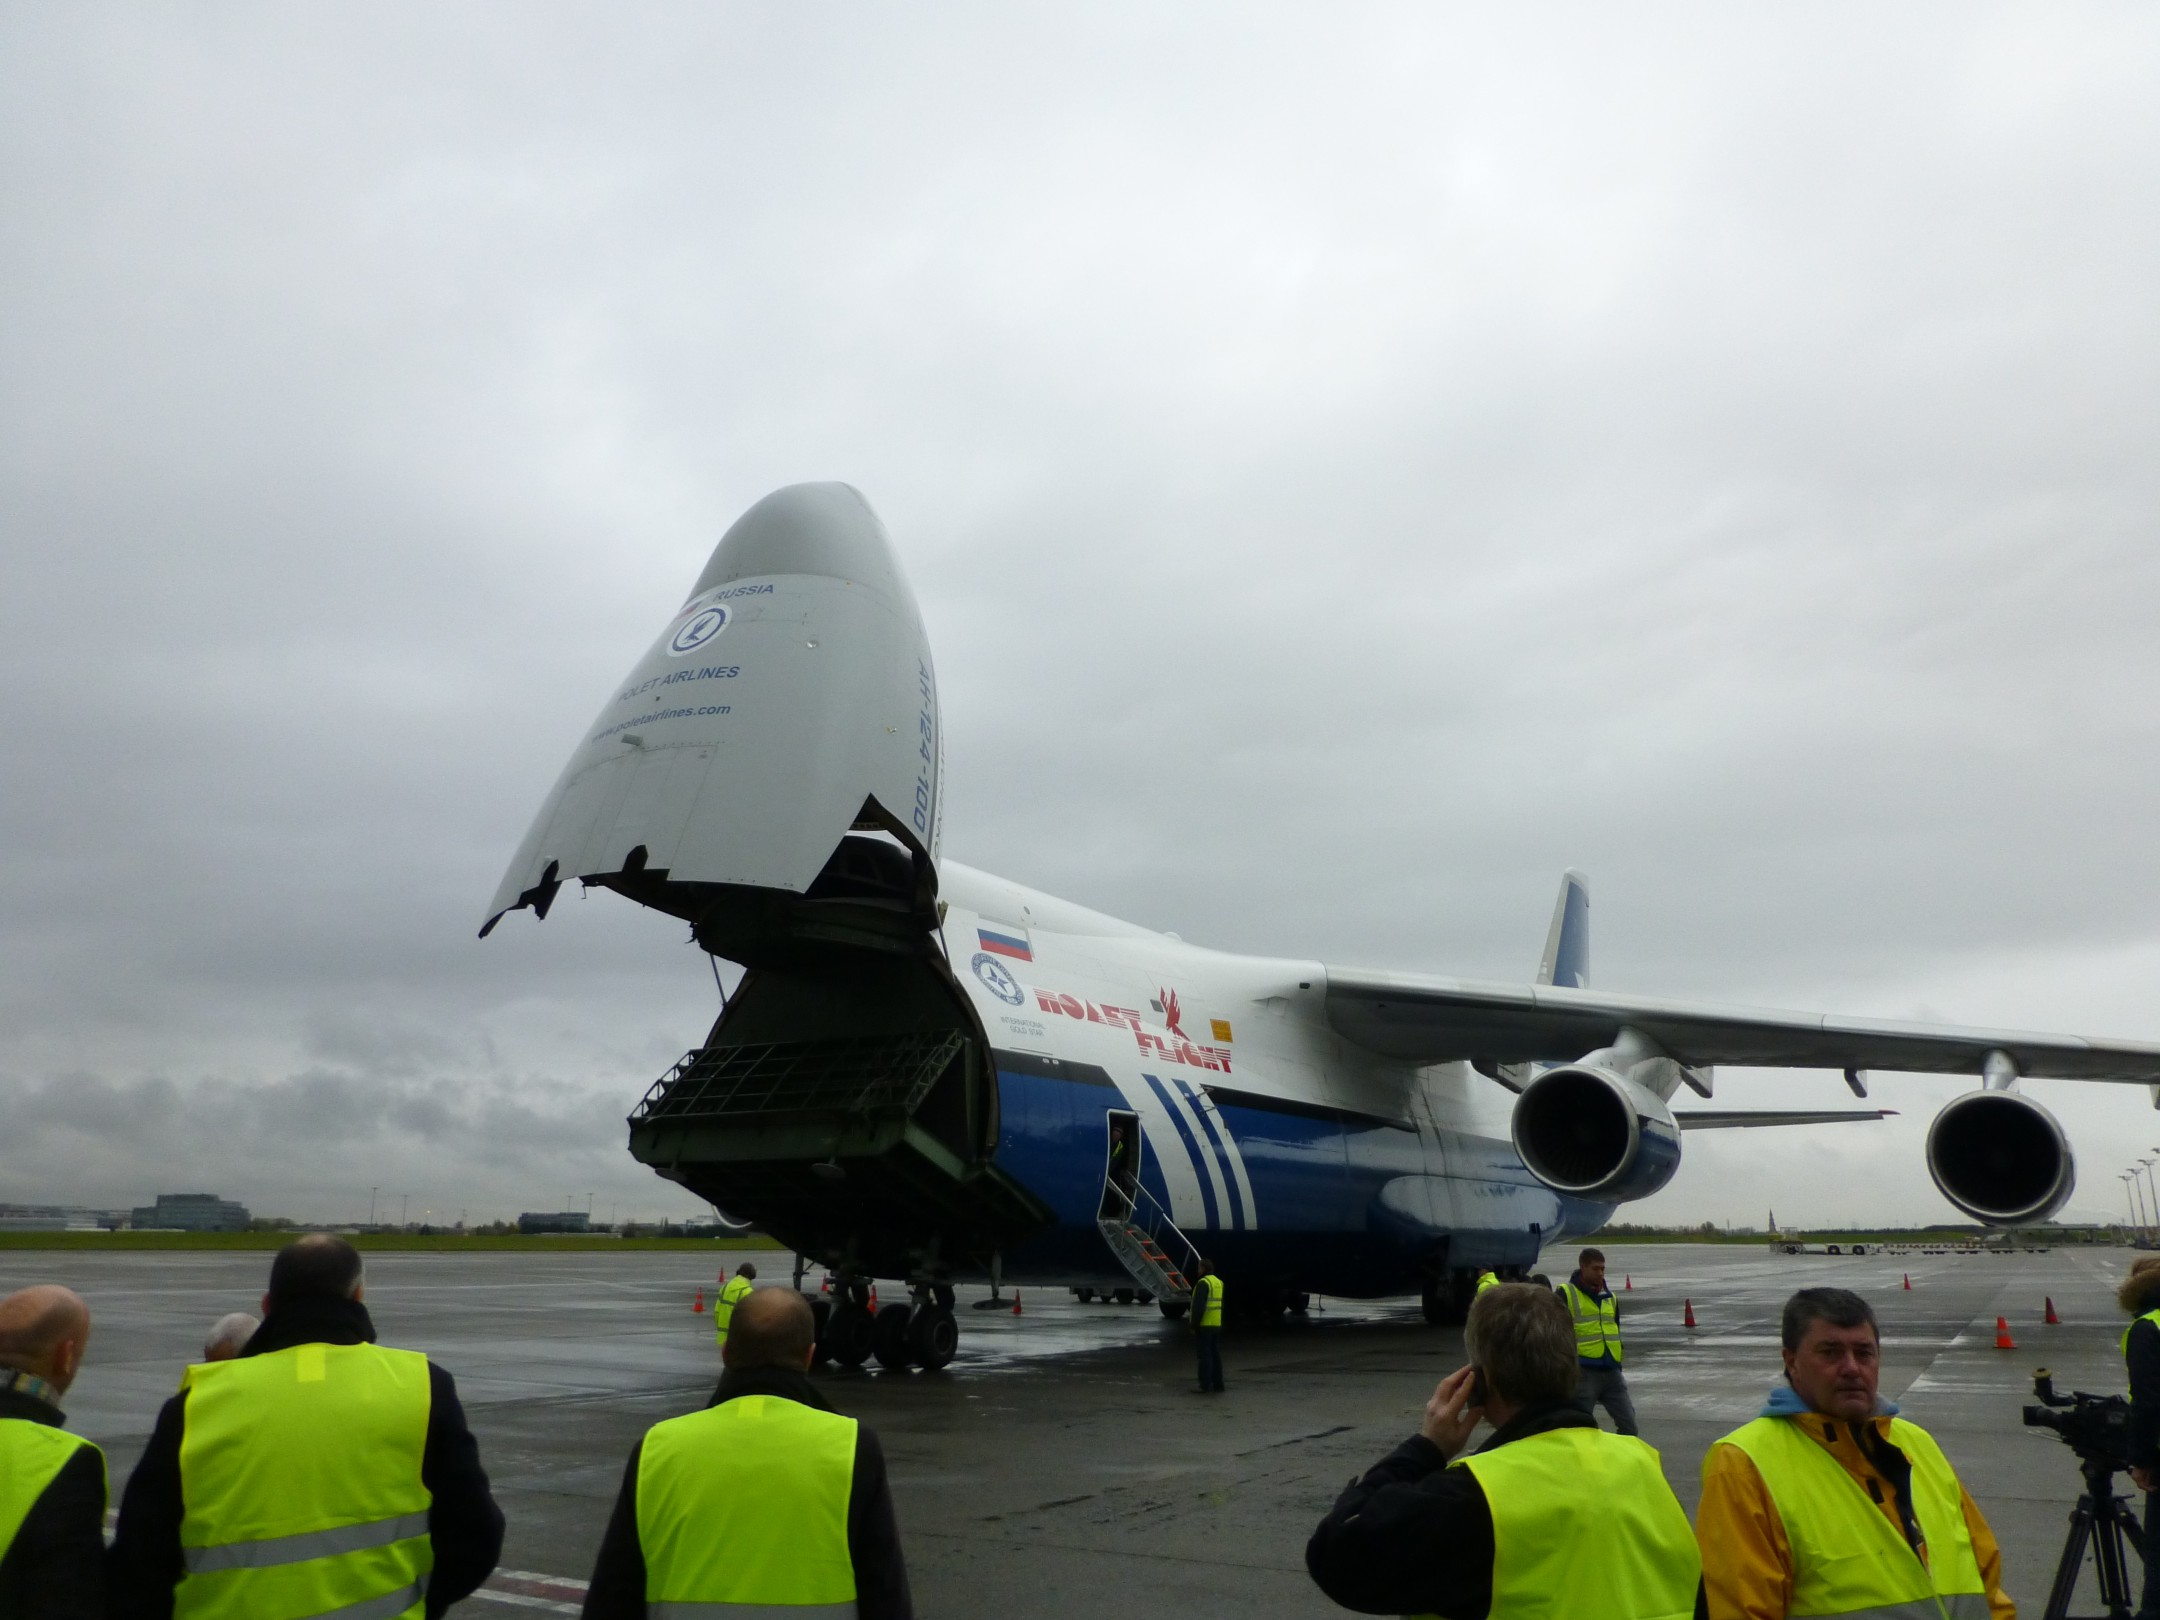 antonov-turbogenerator-maintenance-partners-021